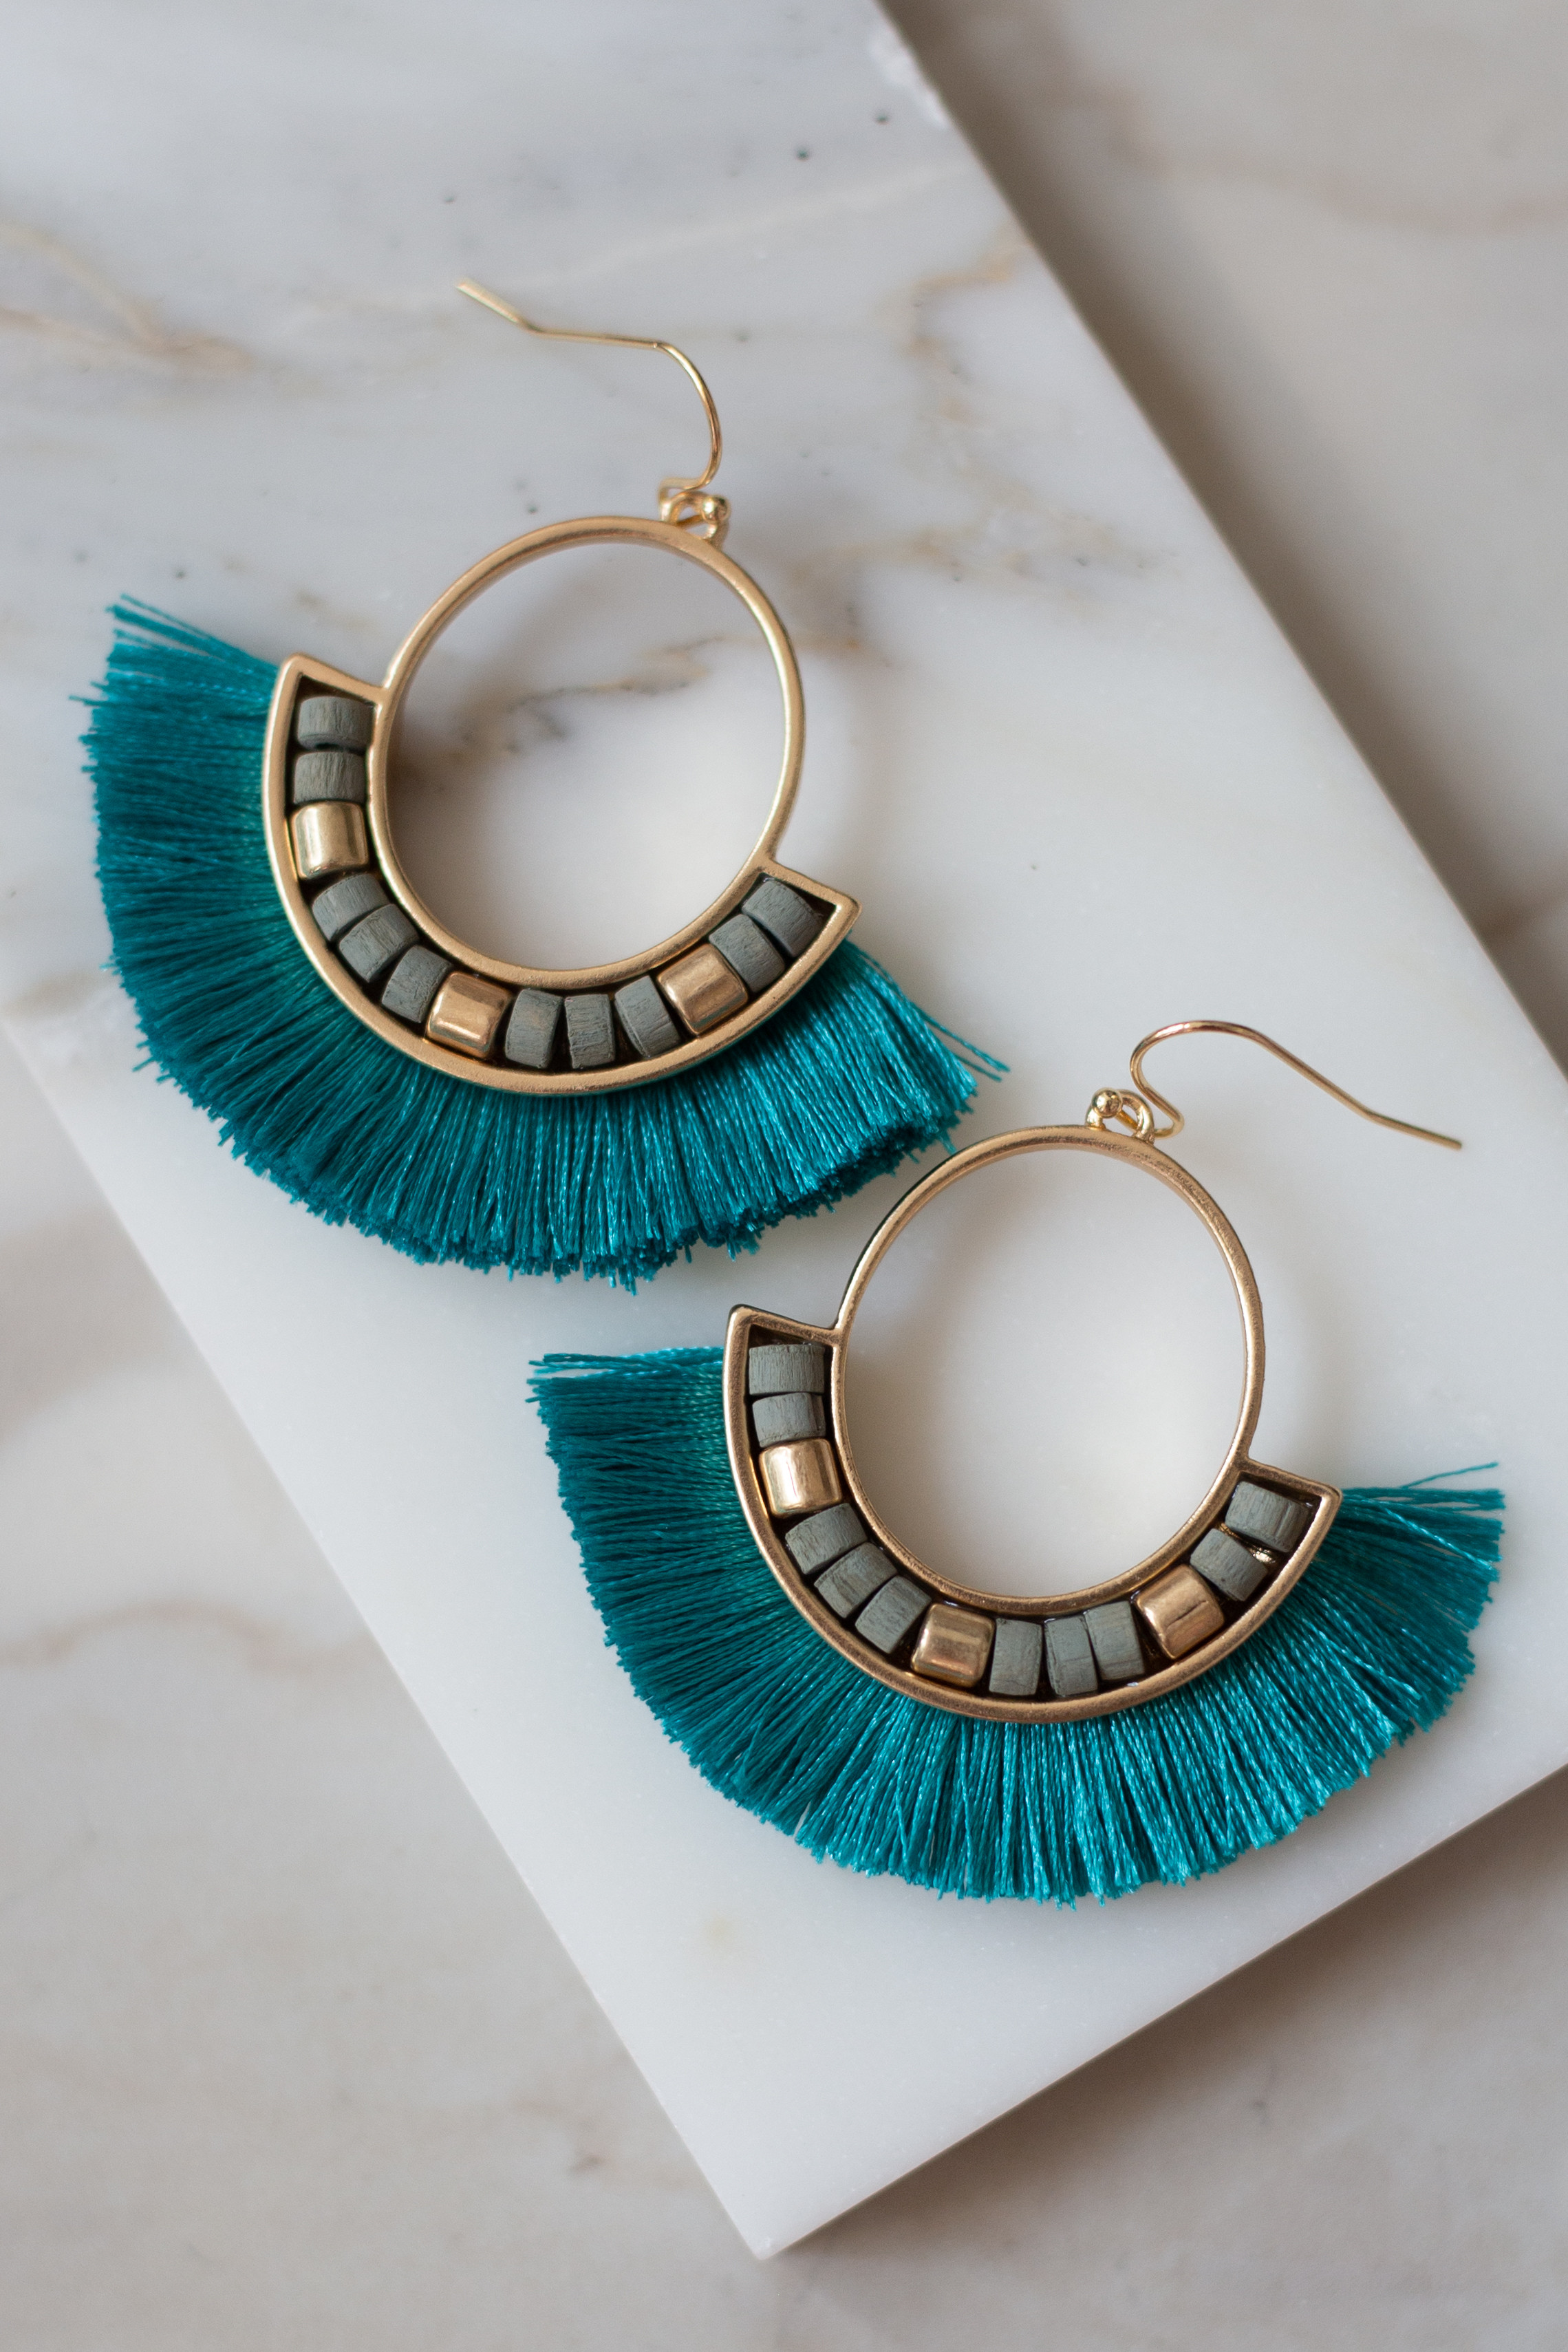 Teal and Gold Tassel Fan Dangle Earrings with Bead Details